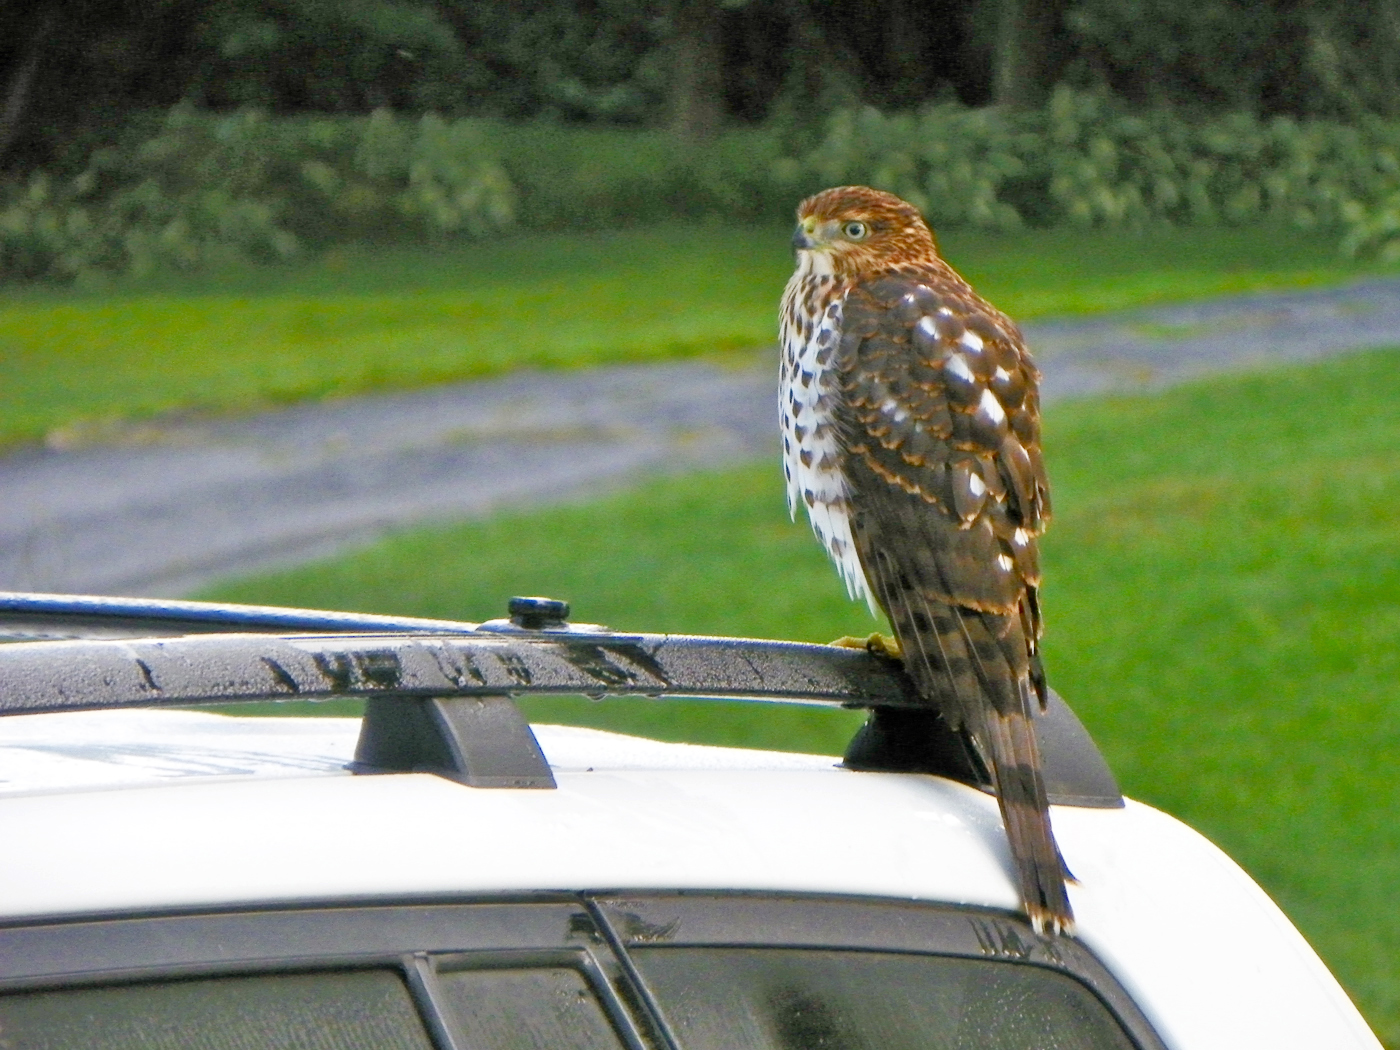 Mary Eccles of Norwalk, Conn., had this visitor waiting on her car in this August 2014 photograph. Not sure where the Cooper's Hawk wanted to go.